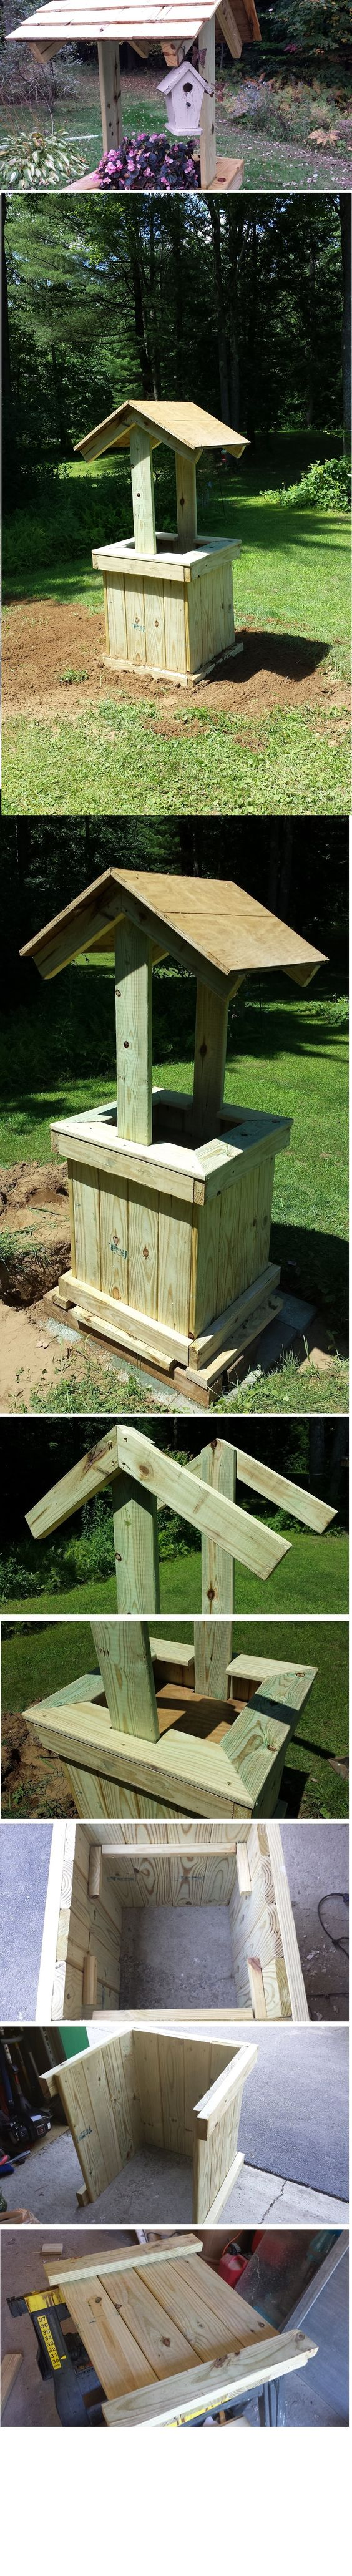 Concrete Well Lids For Wells : The wishing well i built to cover concrete septic tank